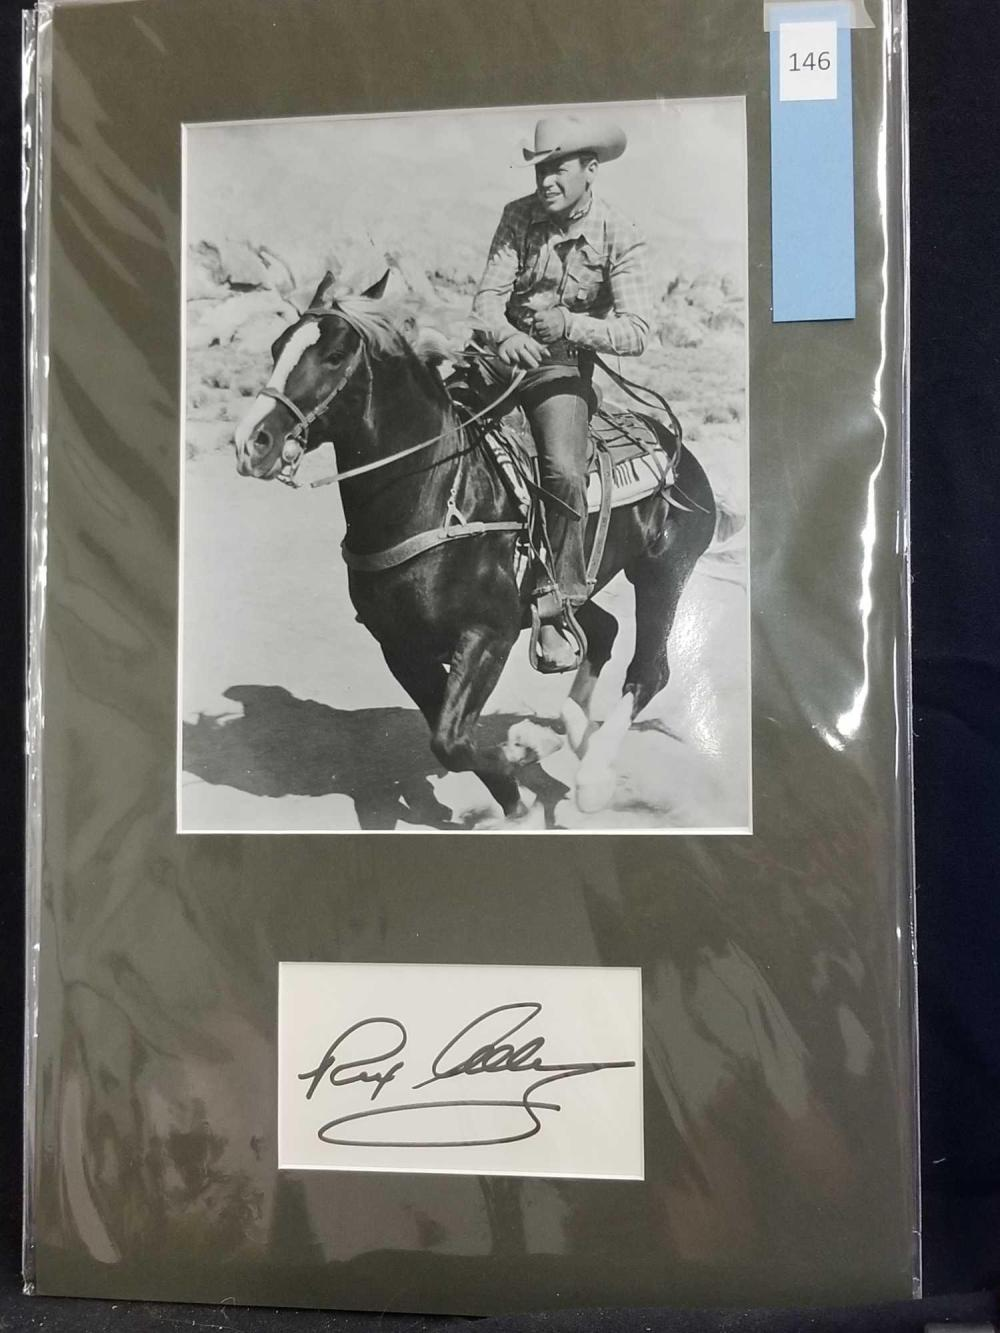 REX ALLEN BLACK & WHITE MOVIE STILL PHOTO & SIGNATURE CARD